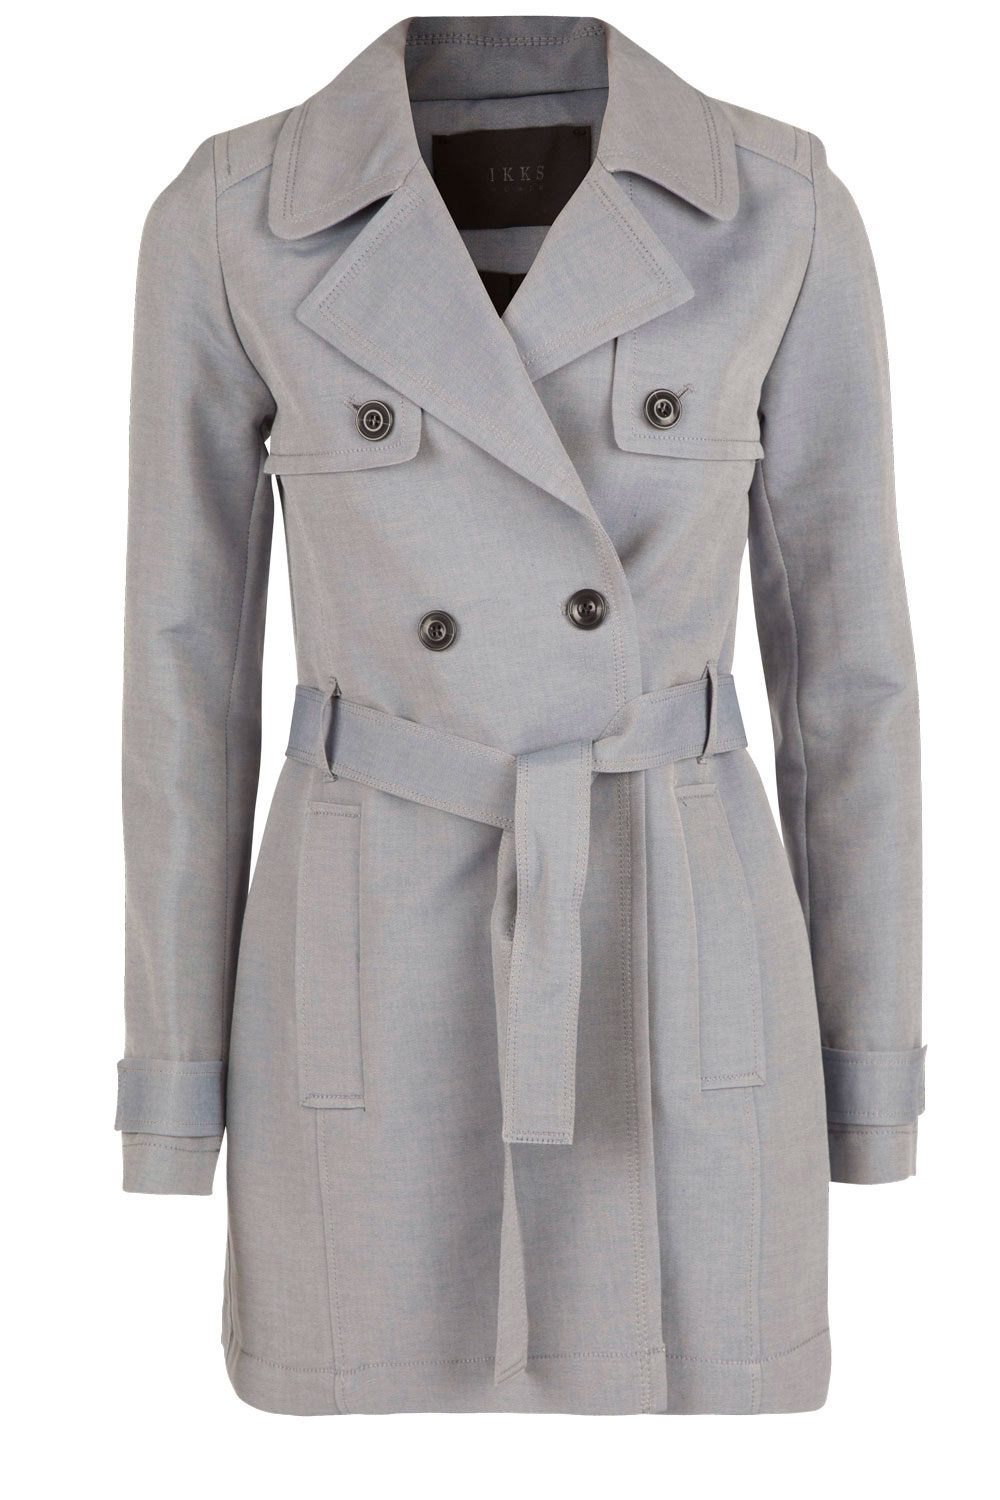 886a47309e8701 Trenchcoat Court